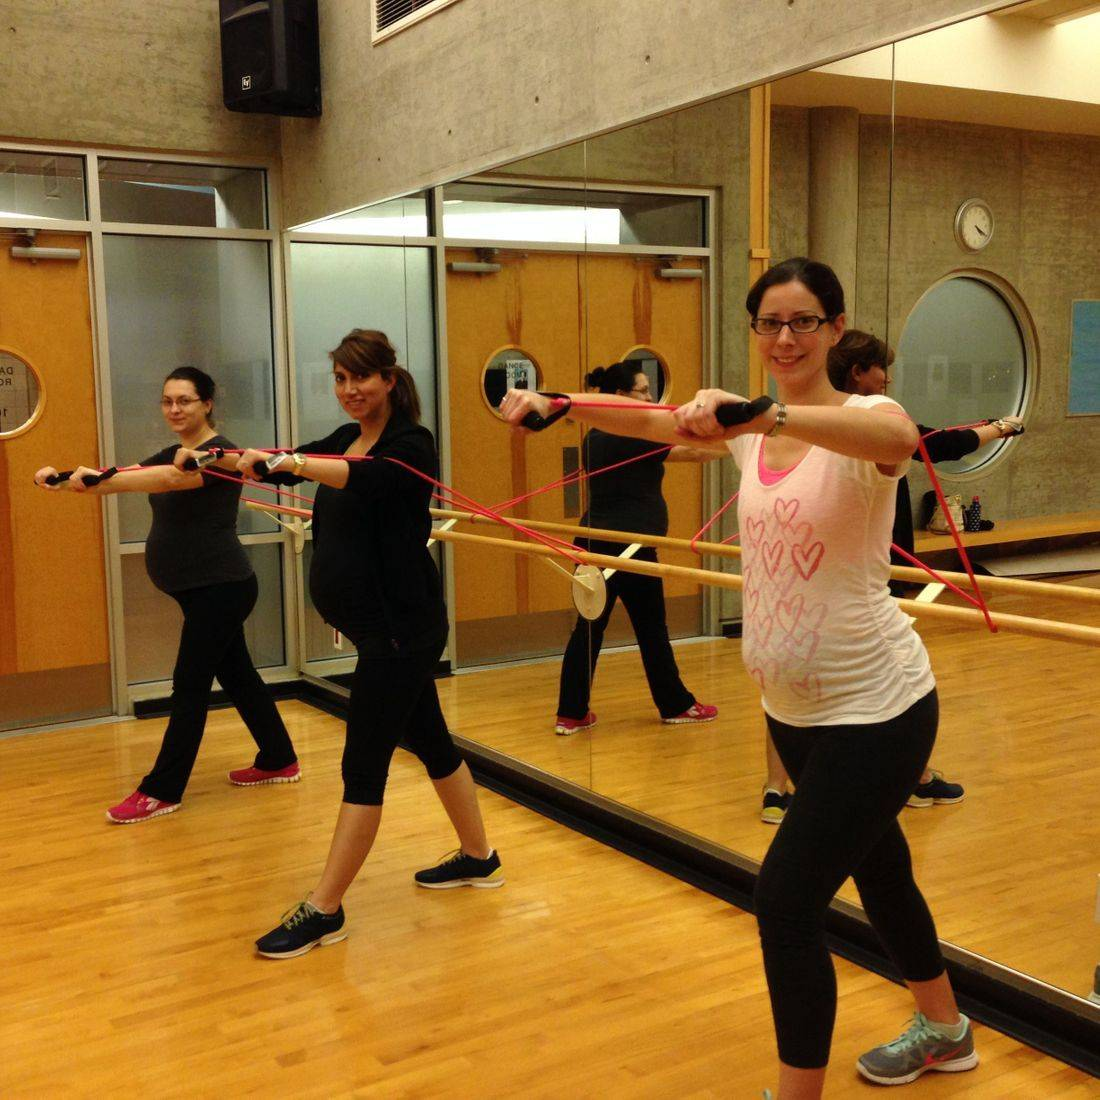 Prenatal, Prenatal Fitness, Prenatal Yoga, Prenatal Exercise